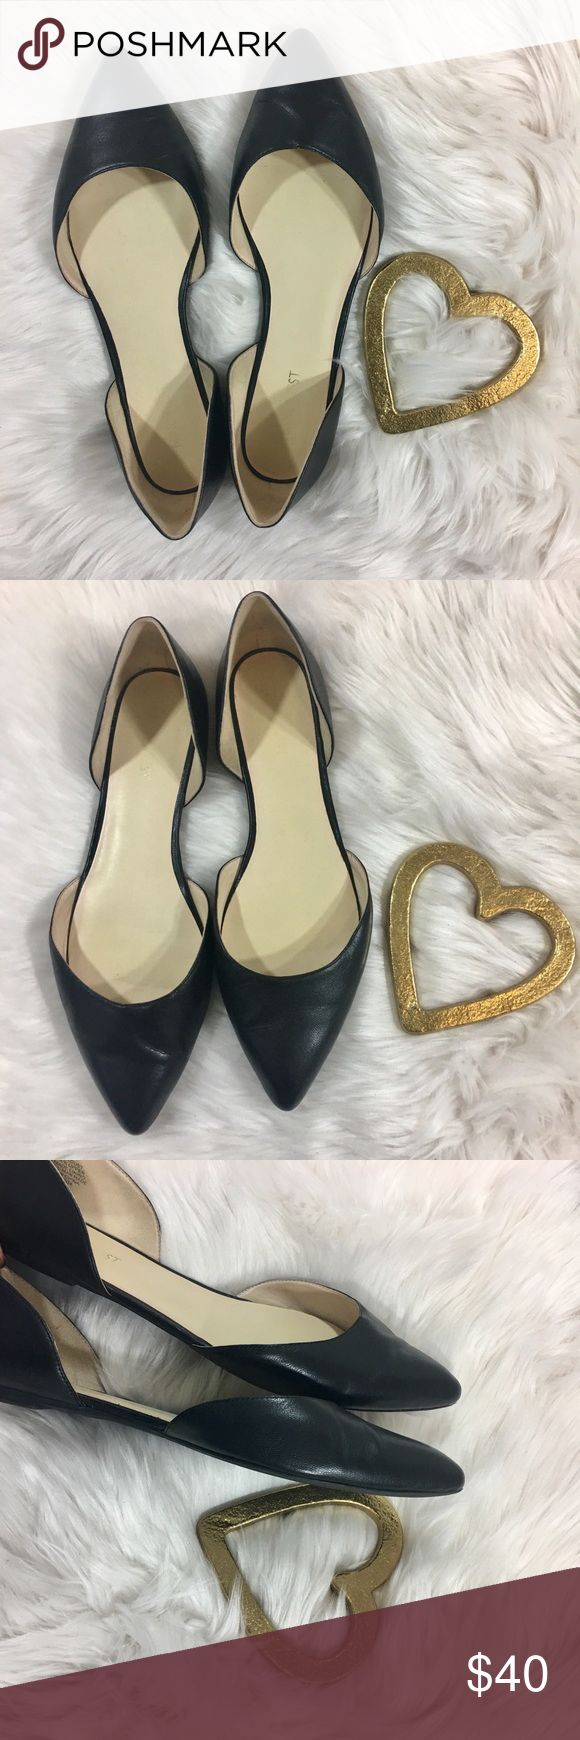 Nine West Stardust Black Leather Flats Excellent used condition! Black leather! Very little wear and tare, like new! 🚫 No trades! Reasonable offers and bundles accepted! Nine West Shoes Flats & Loafers